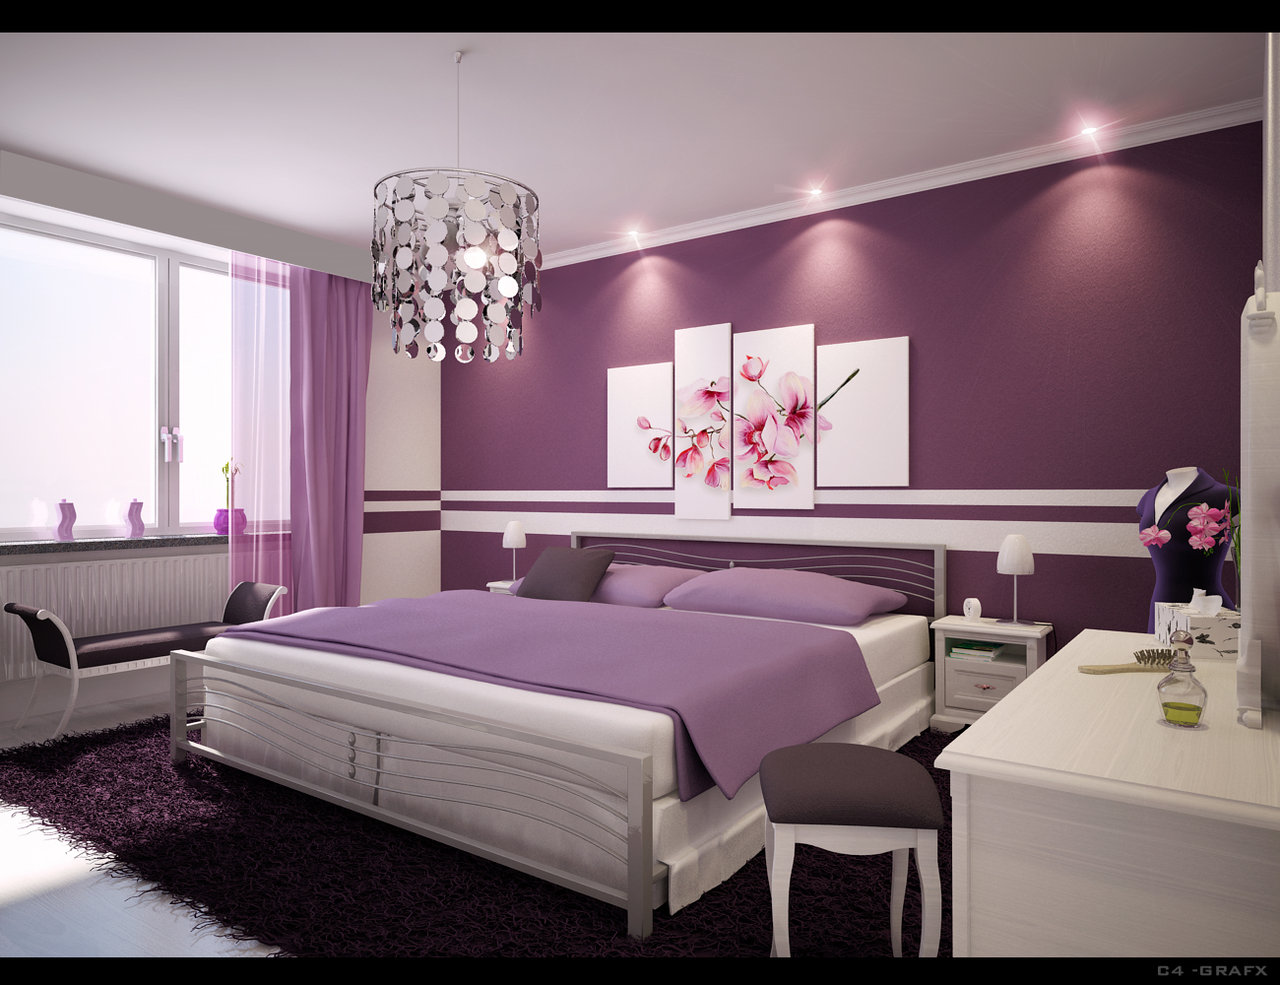 New home designs latest.: Home bedrooms decoration ideas.